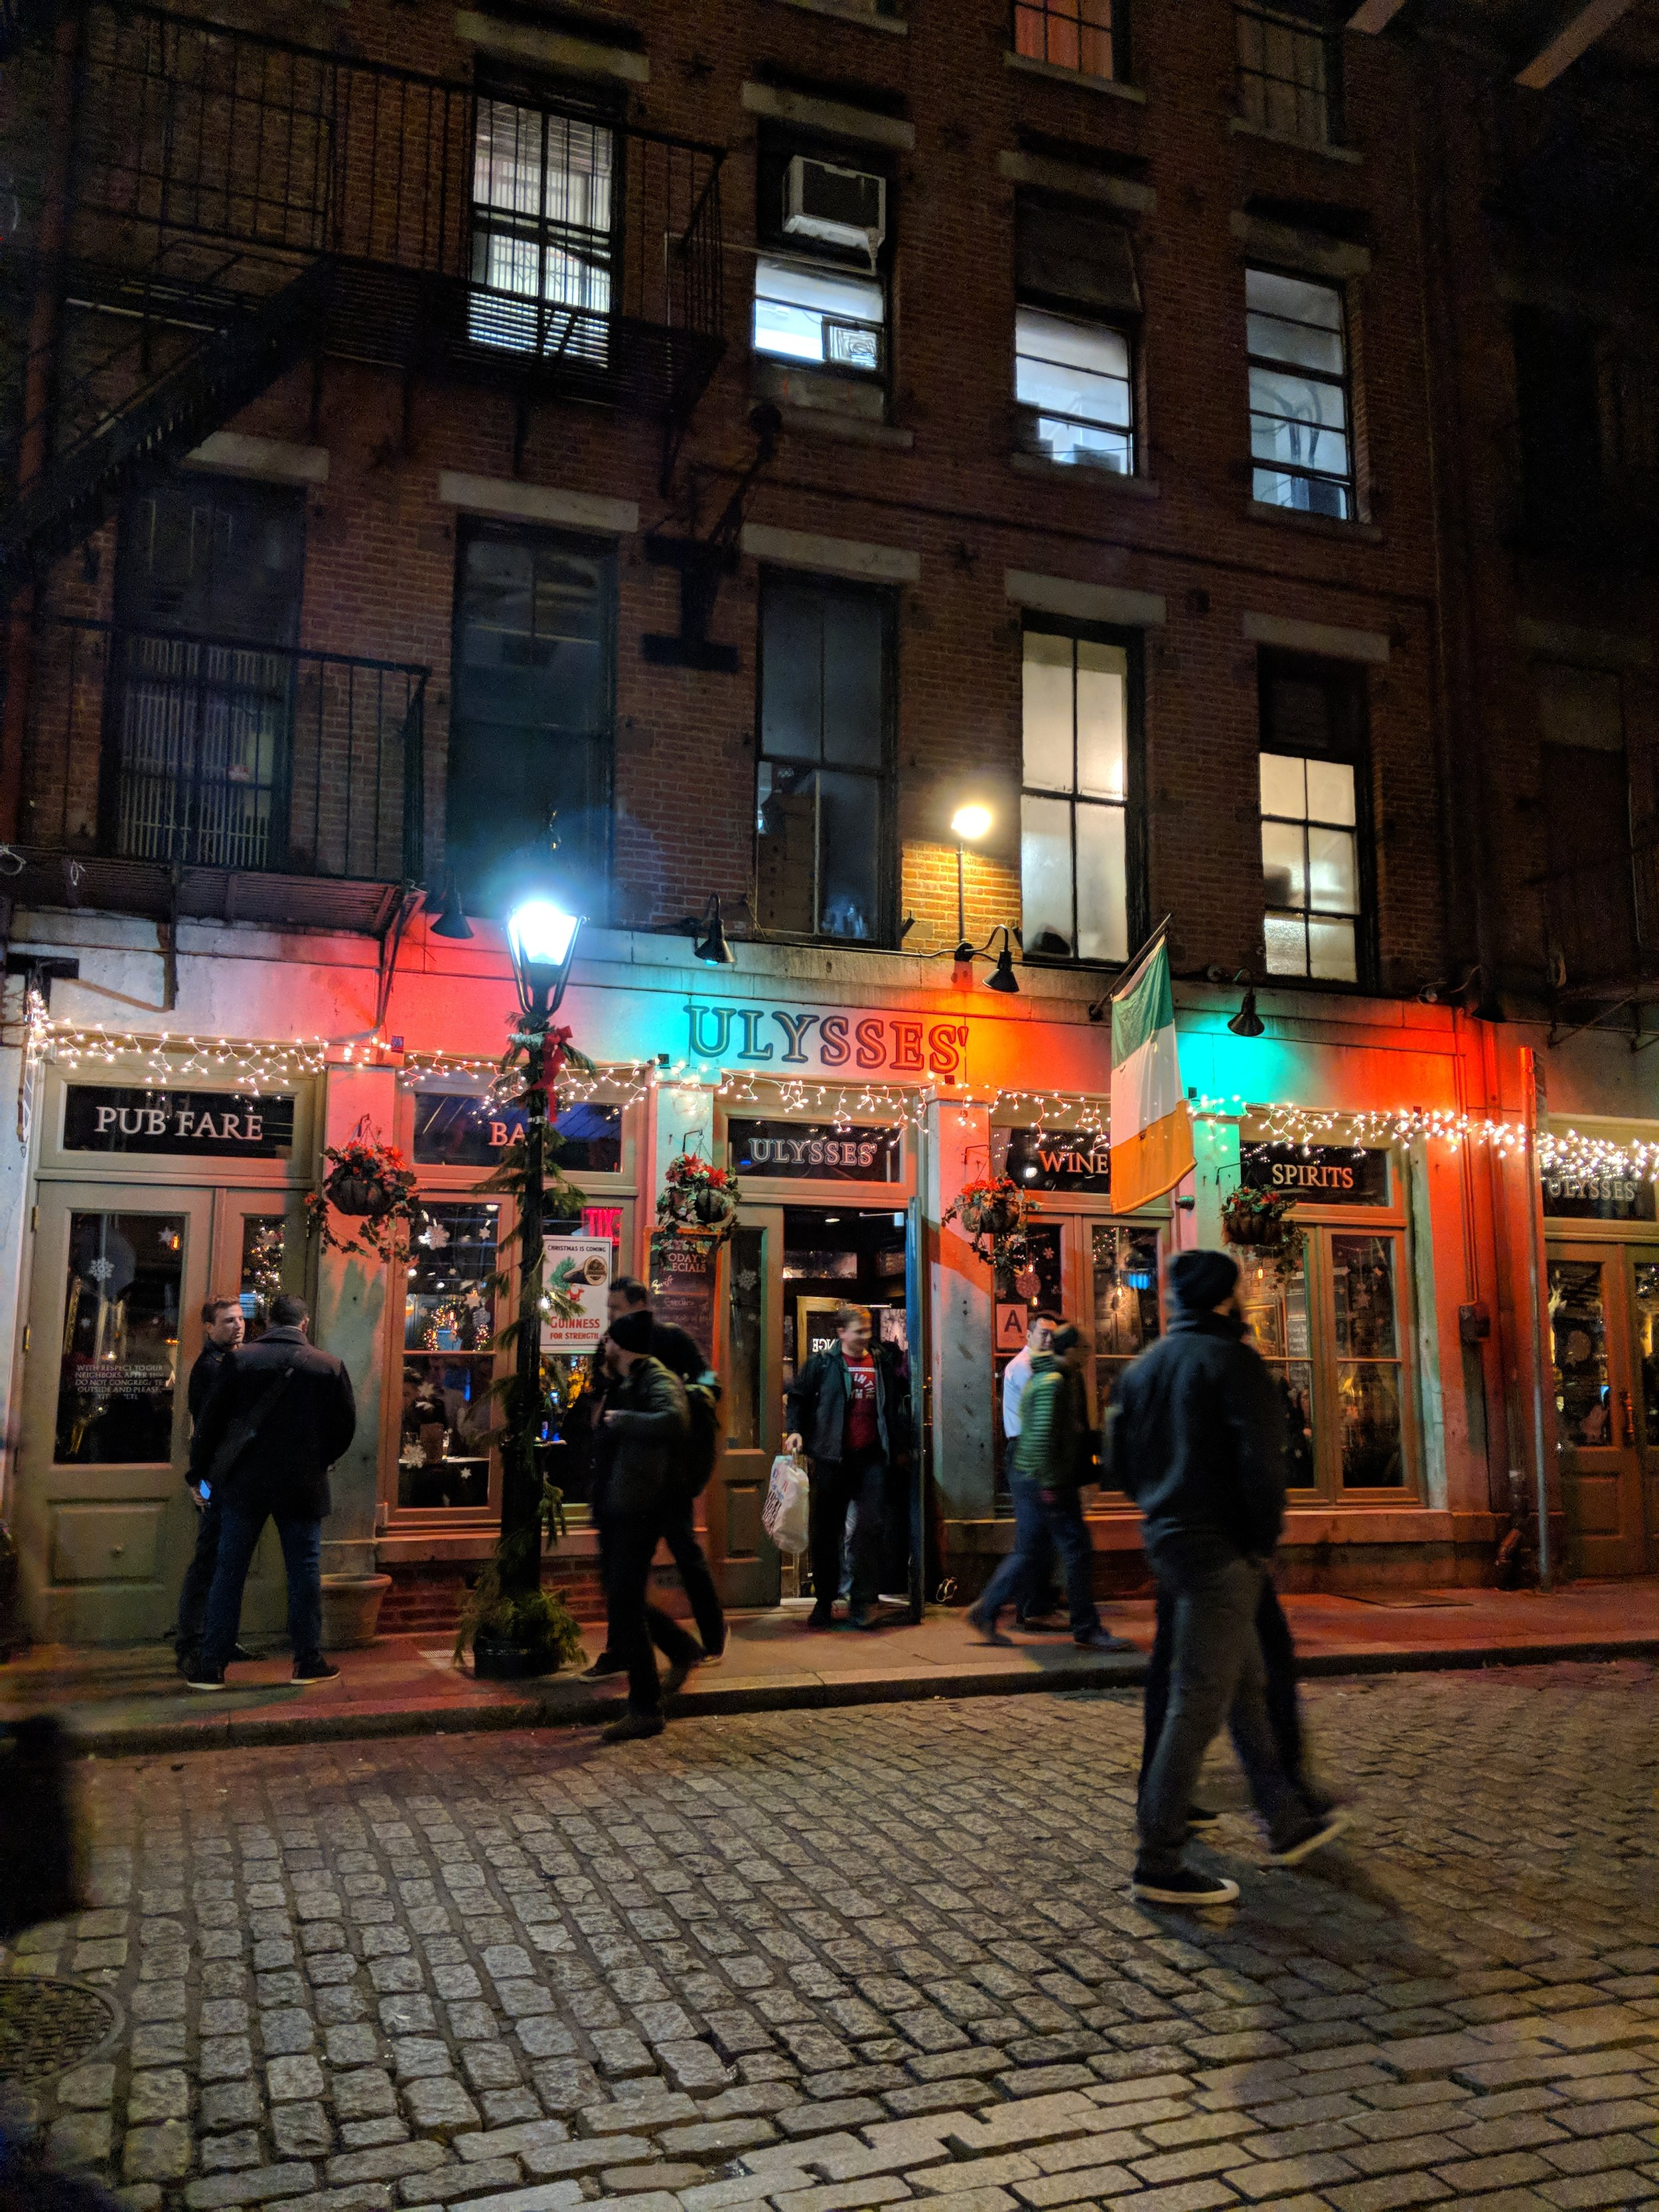 Stone Street...this bar has $18 lobster dinners with all the fixins on Monday nights!